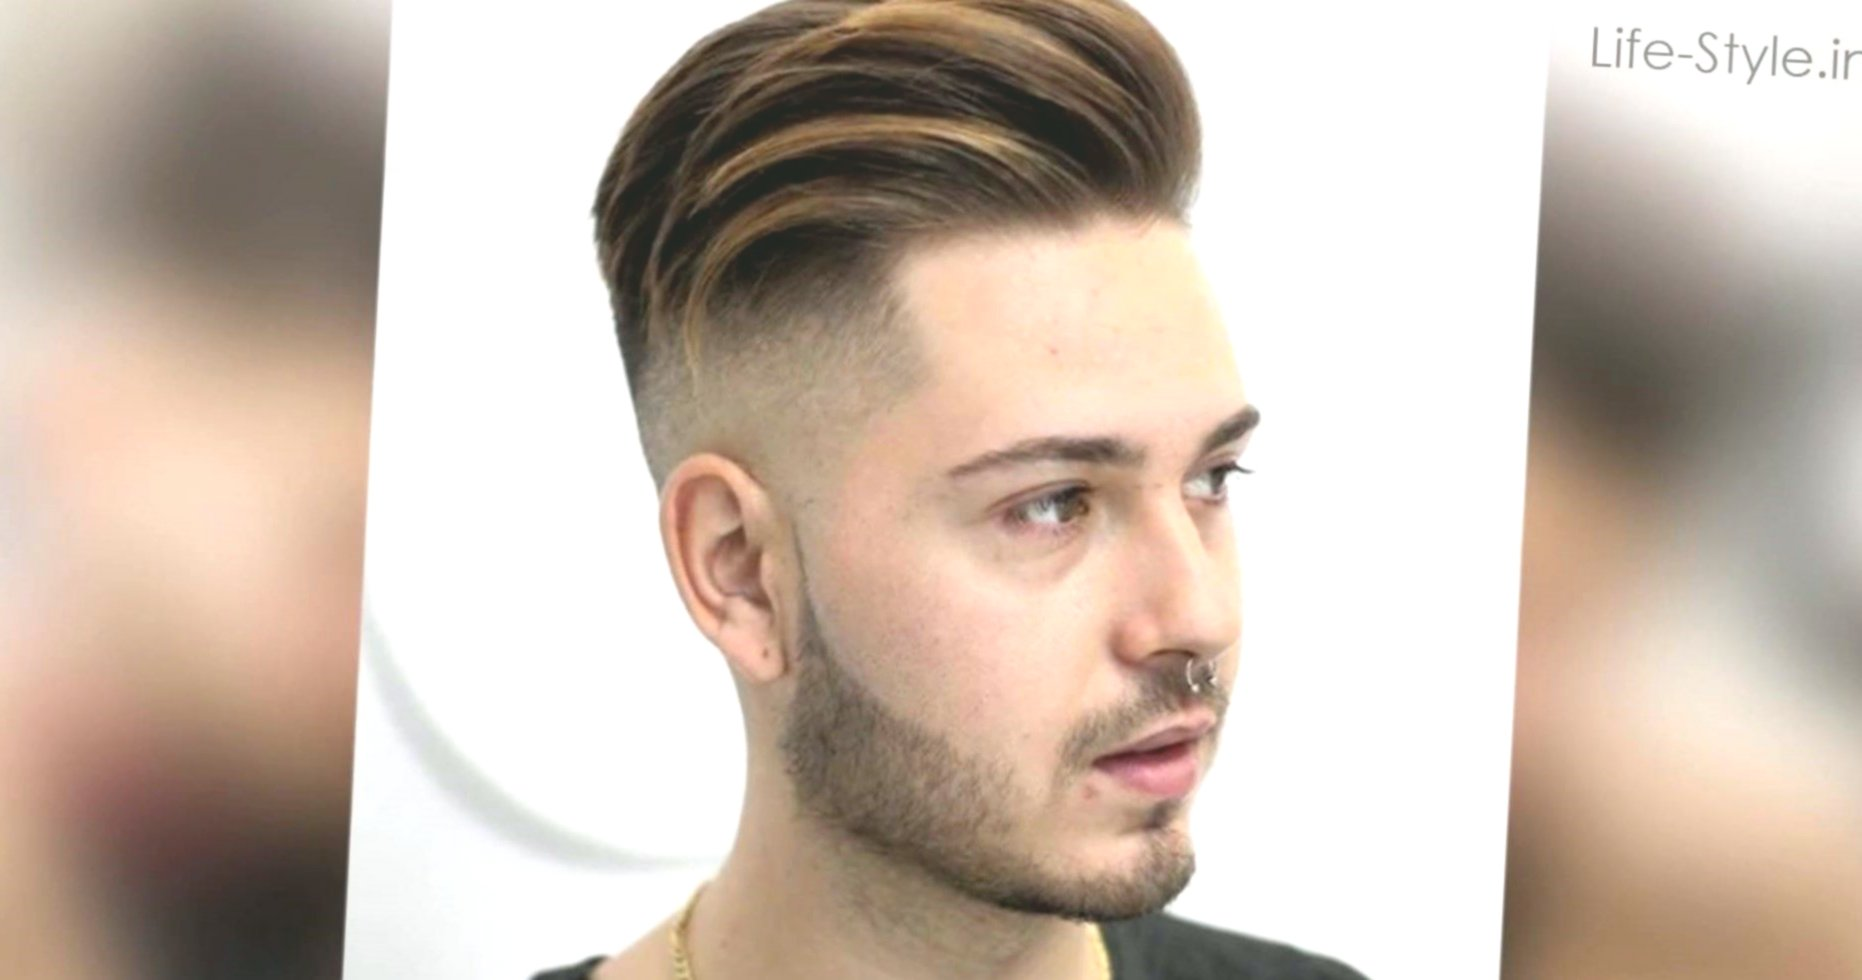 fantastic trend hairstyles men 2018 picture-new trend hairstyles men 2018 ideas